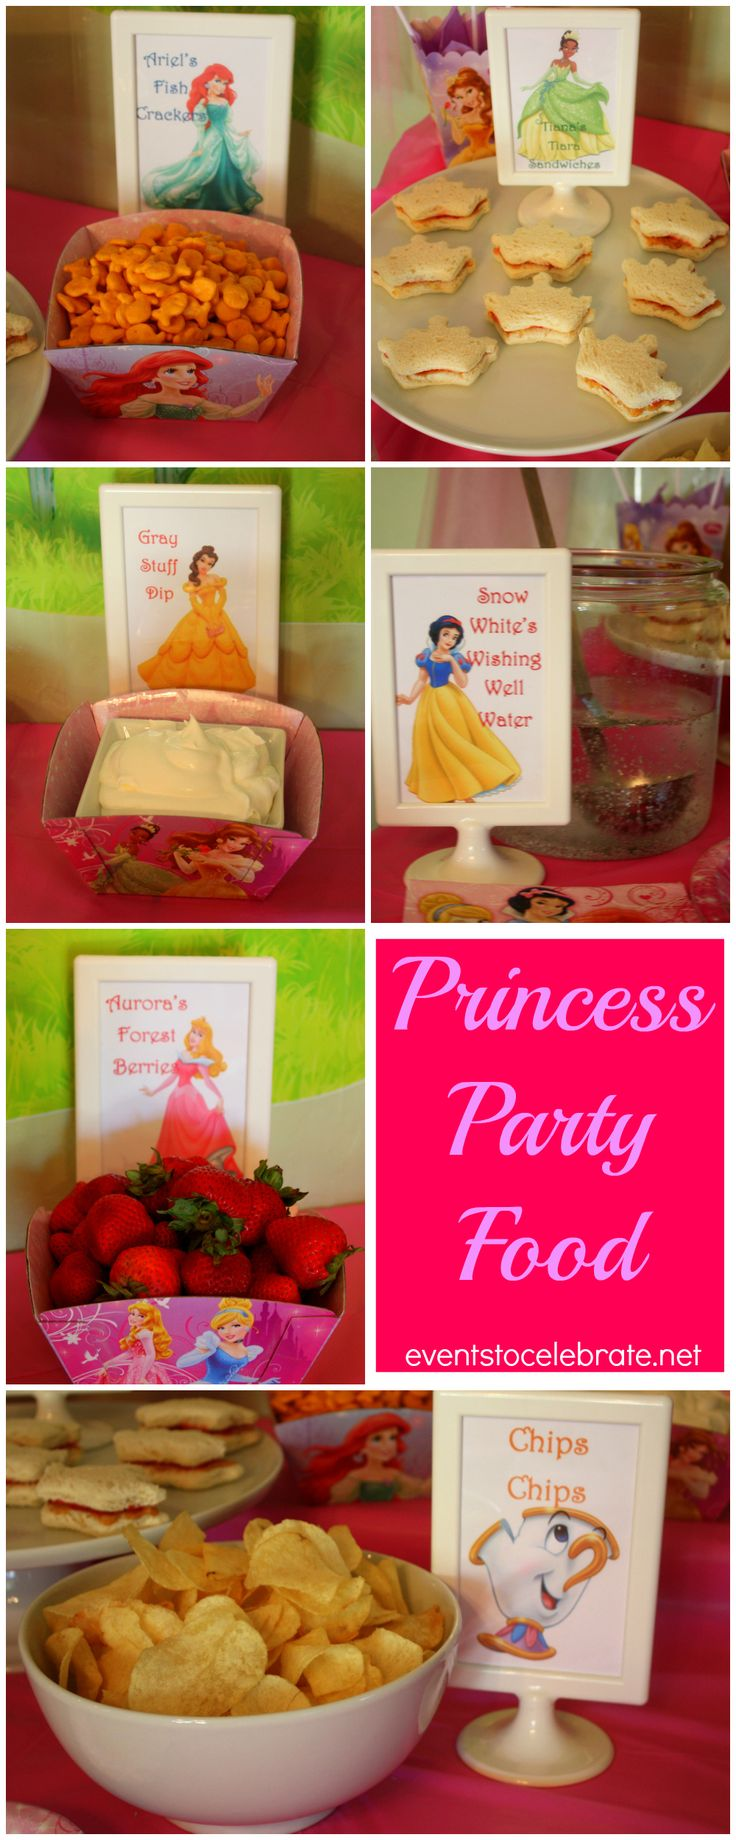 disney princes party ideas cute food ideas with free printables events to celebrate - Free Disney Games For 4 Year Olds